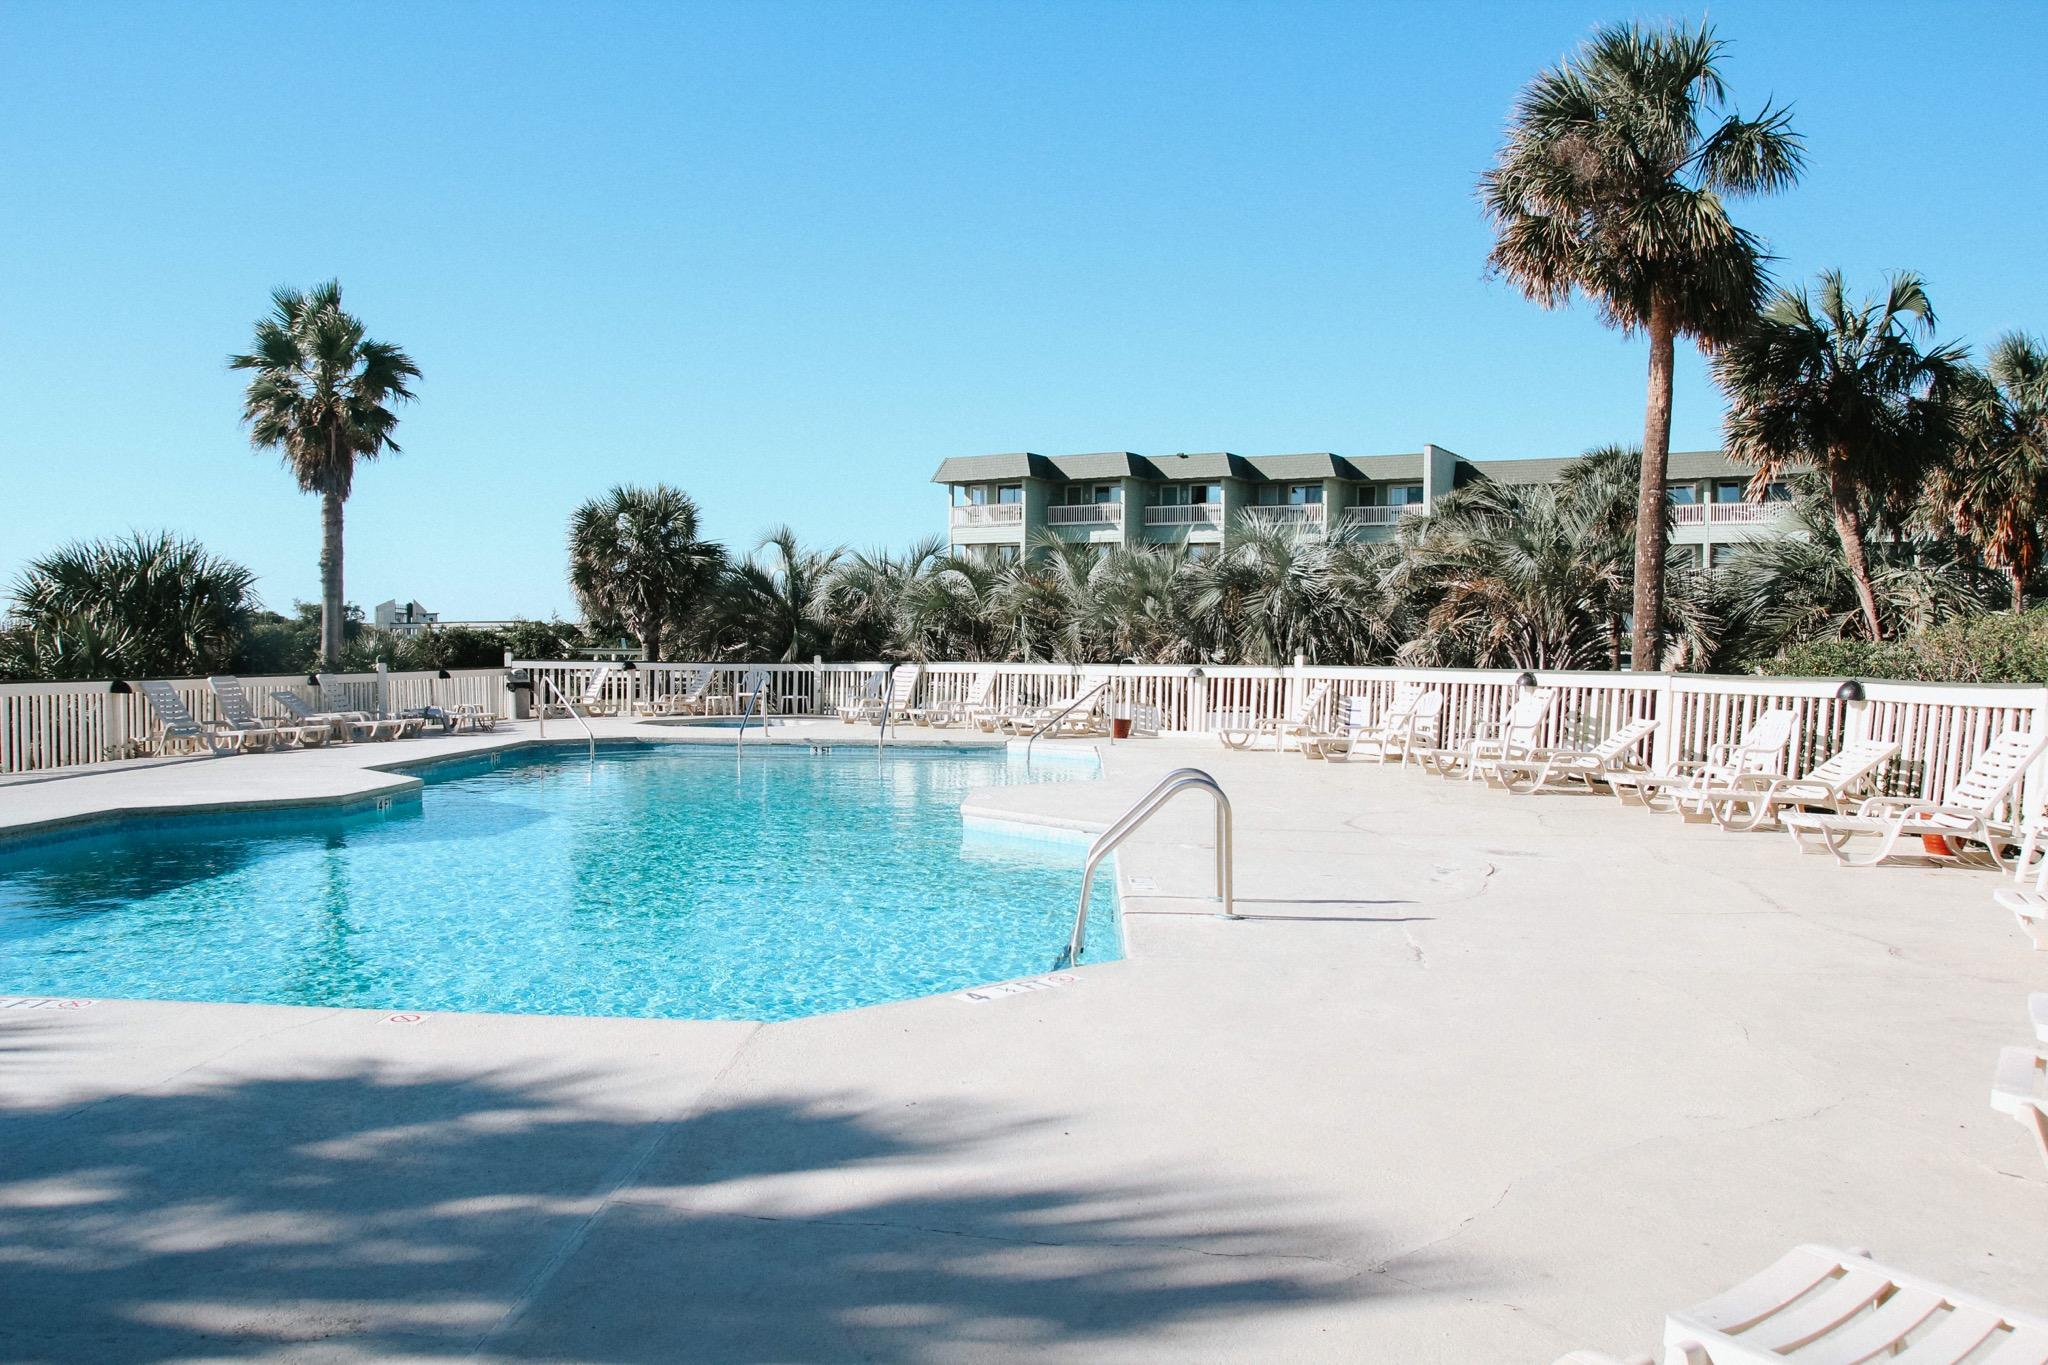 Sea Cabin On The Ocean Homes For Sale - 1300 Ocean, Isle of Palms, SC - 12